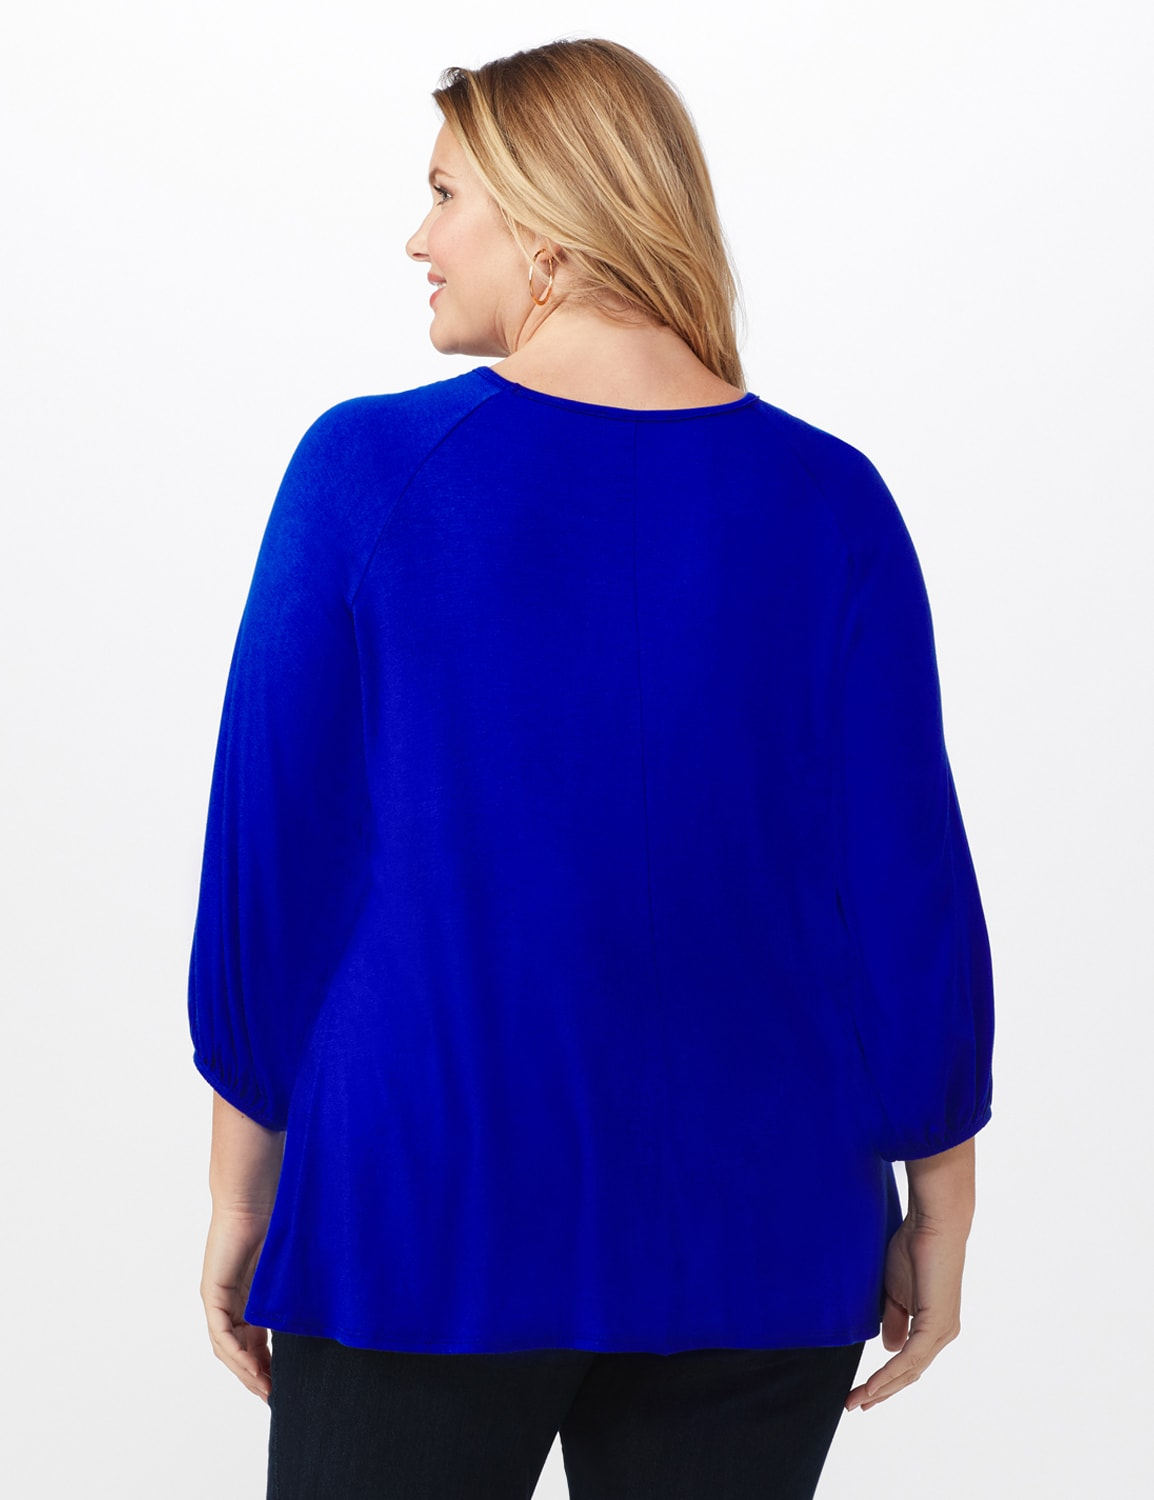 3/4 Sleeve Twist Cut Out Neck Top - Plus - DK Royal - Back